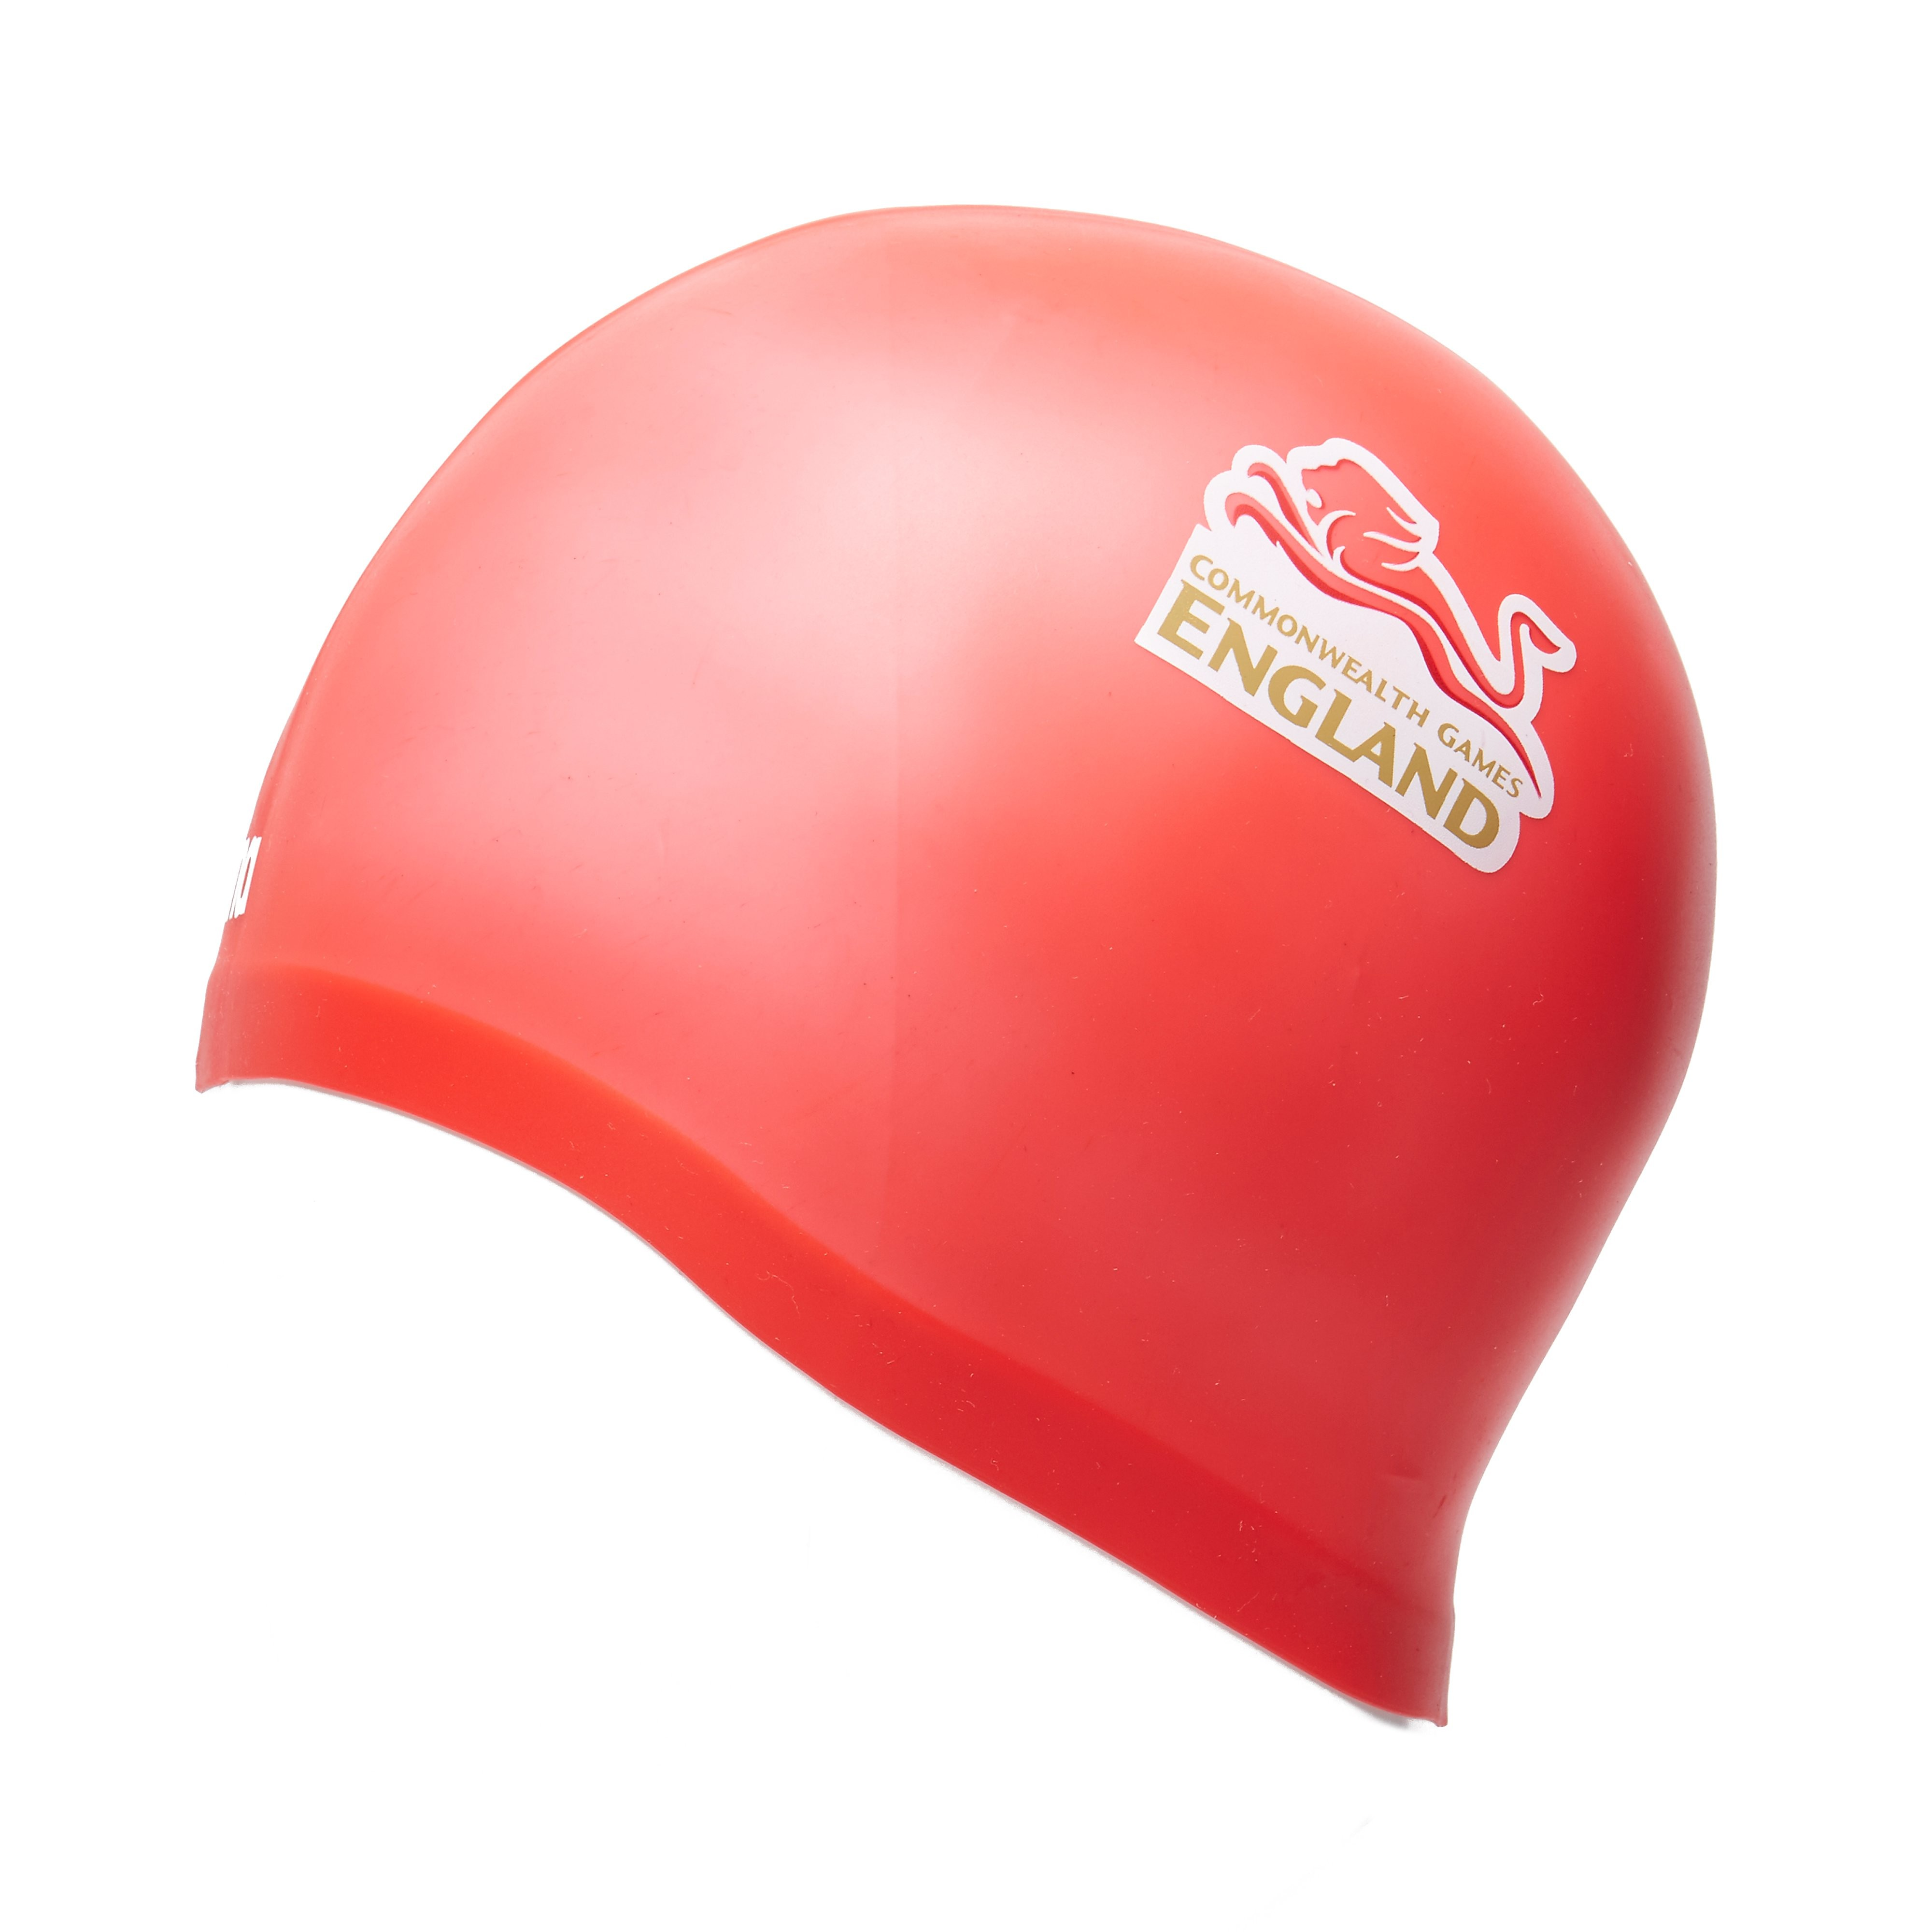 Arena Commonwealth Games Edition Moulded Men's Swimming Cap